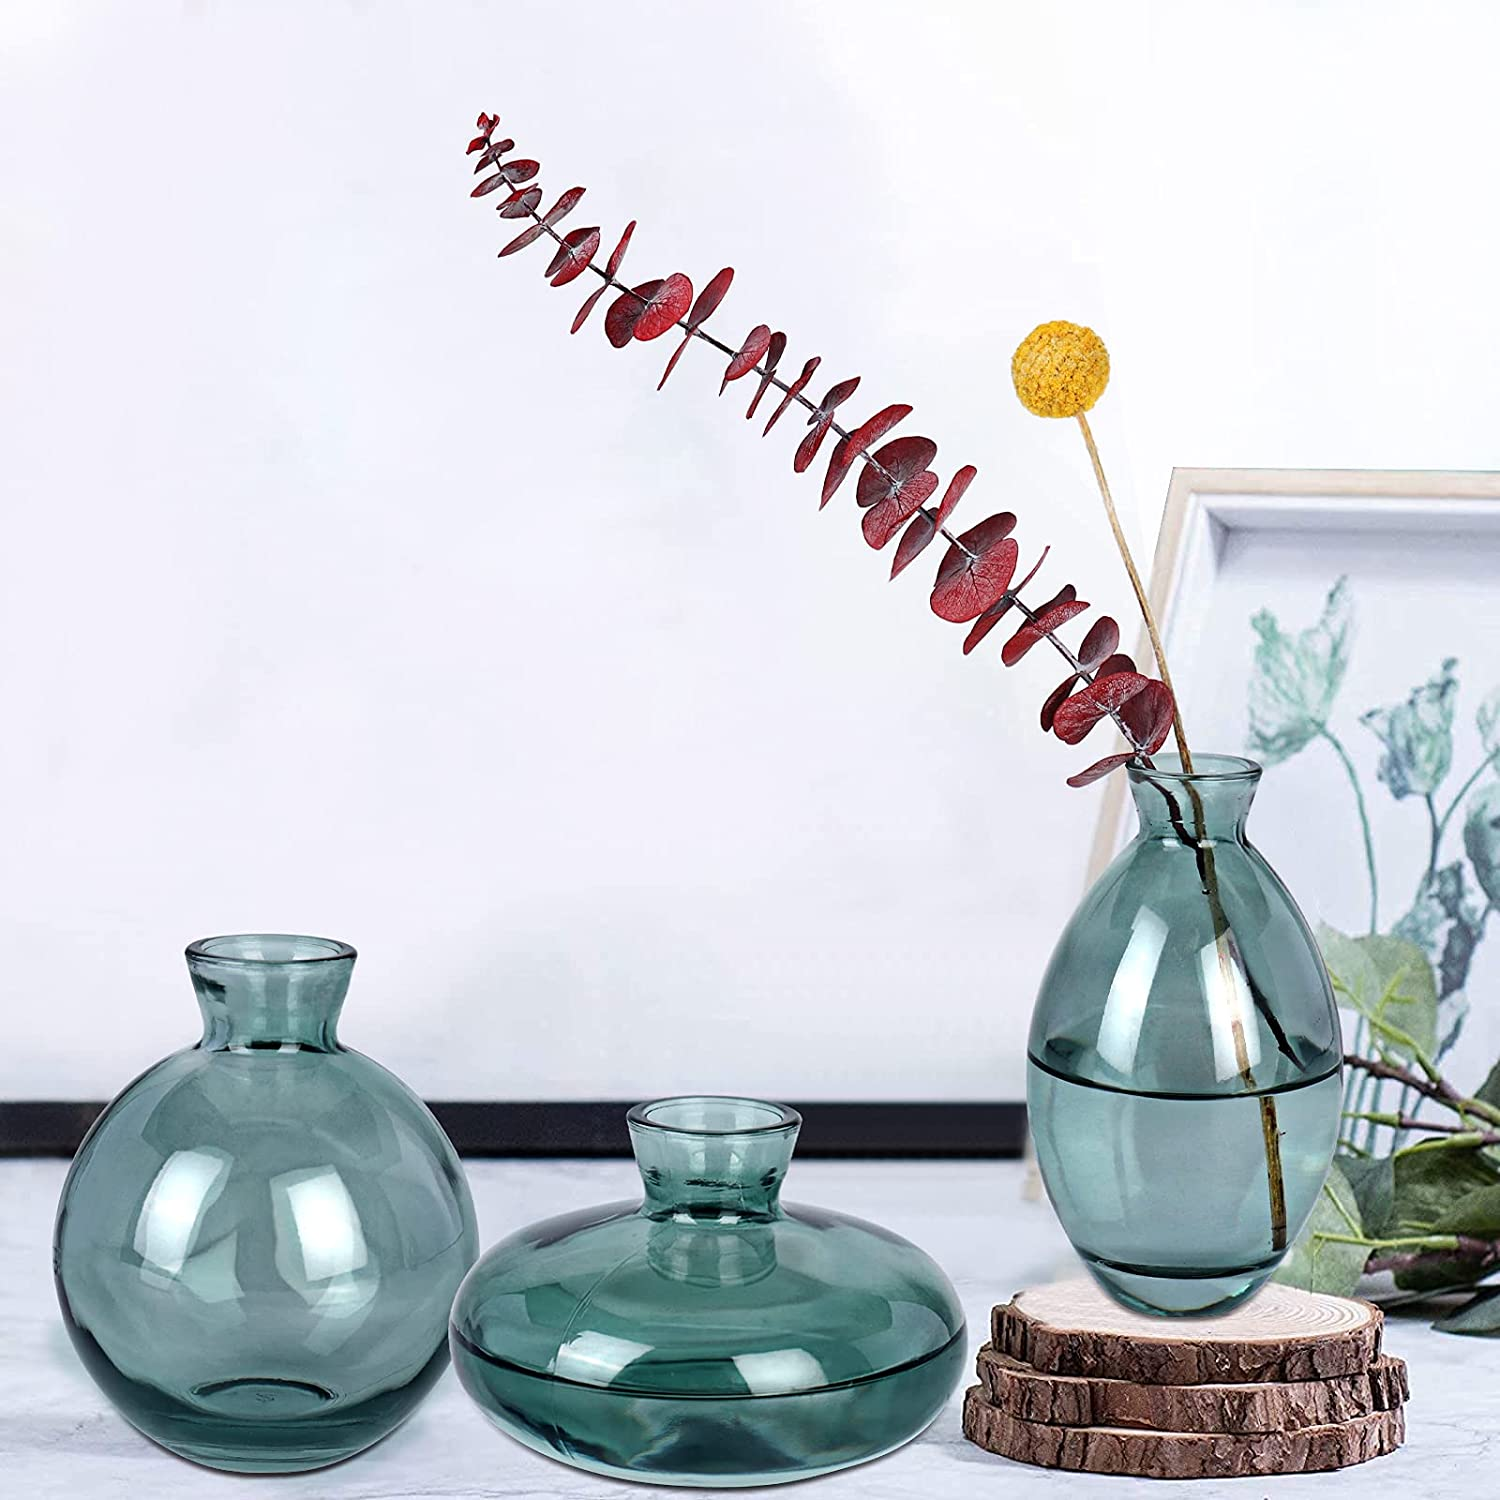 Small Glass Vases for Flowers Max 77% OFF Decor Ins of Decorat online shop Modern Set 3